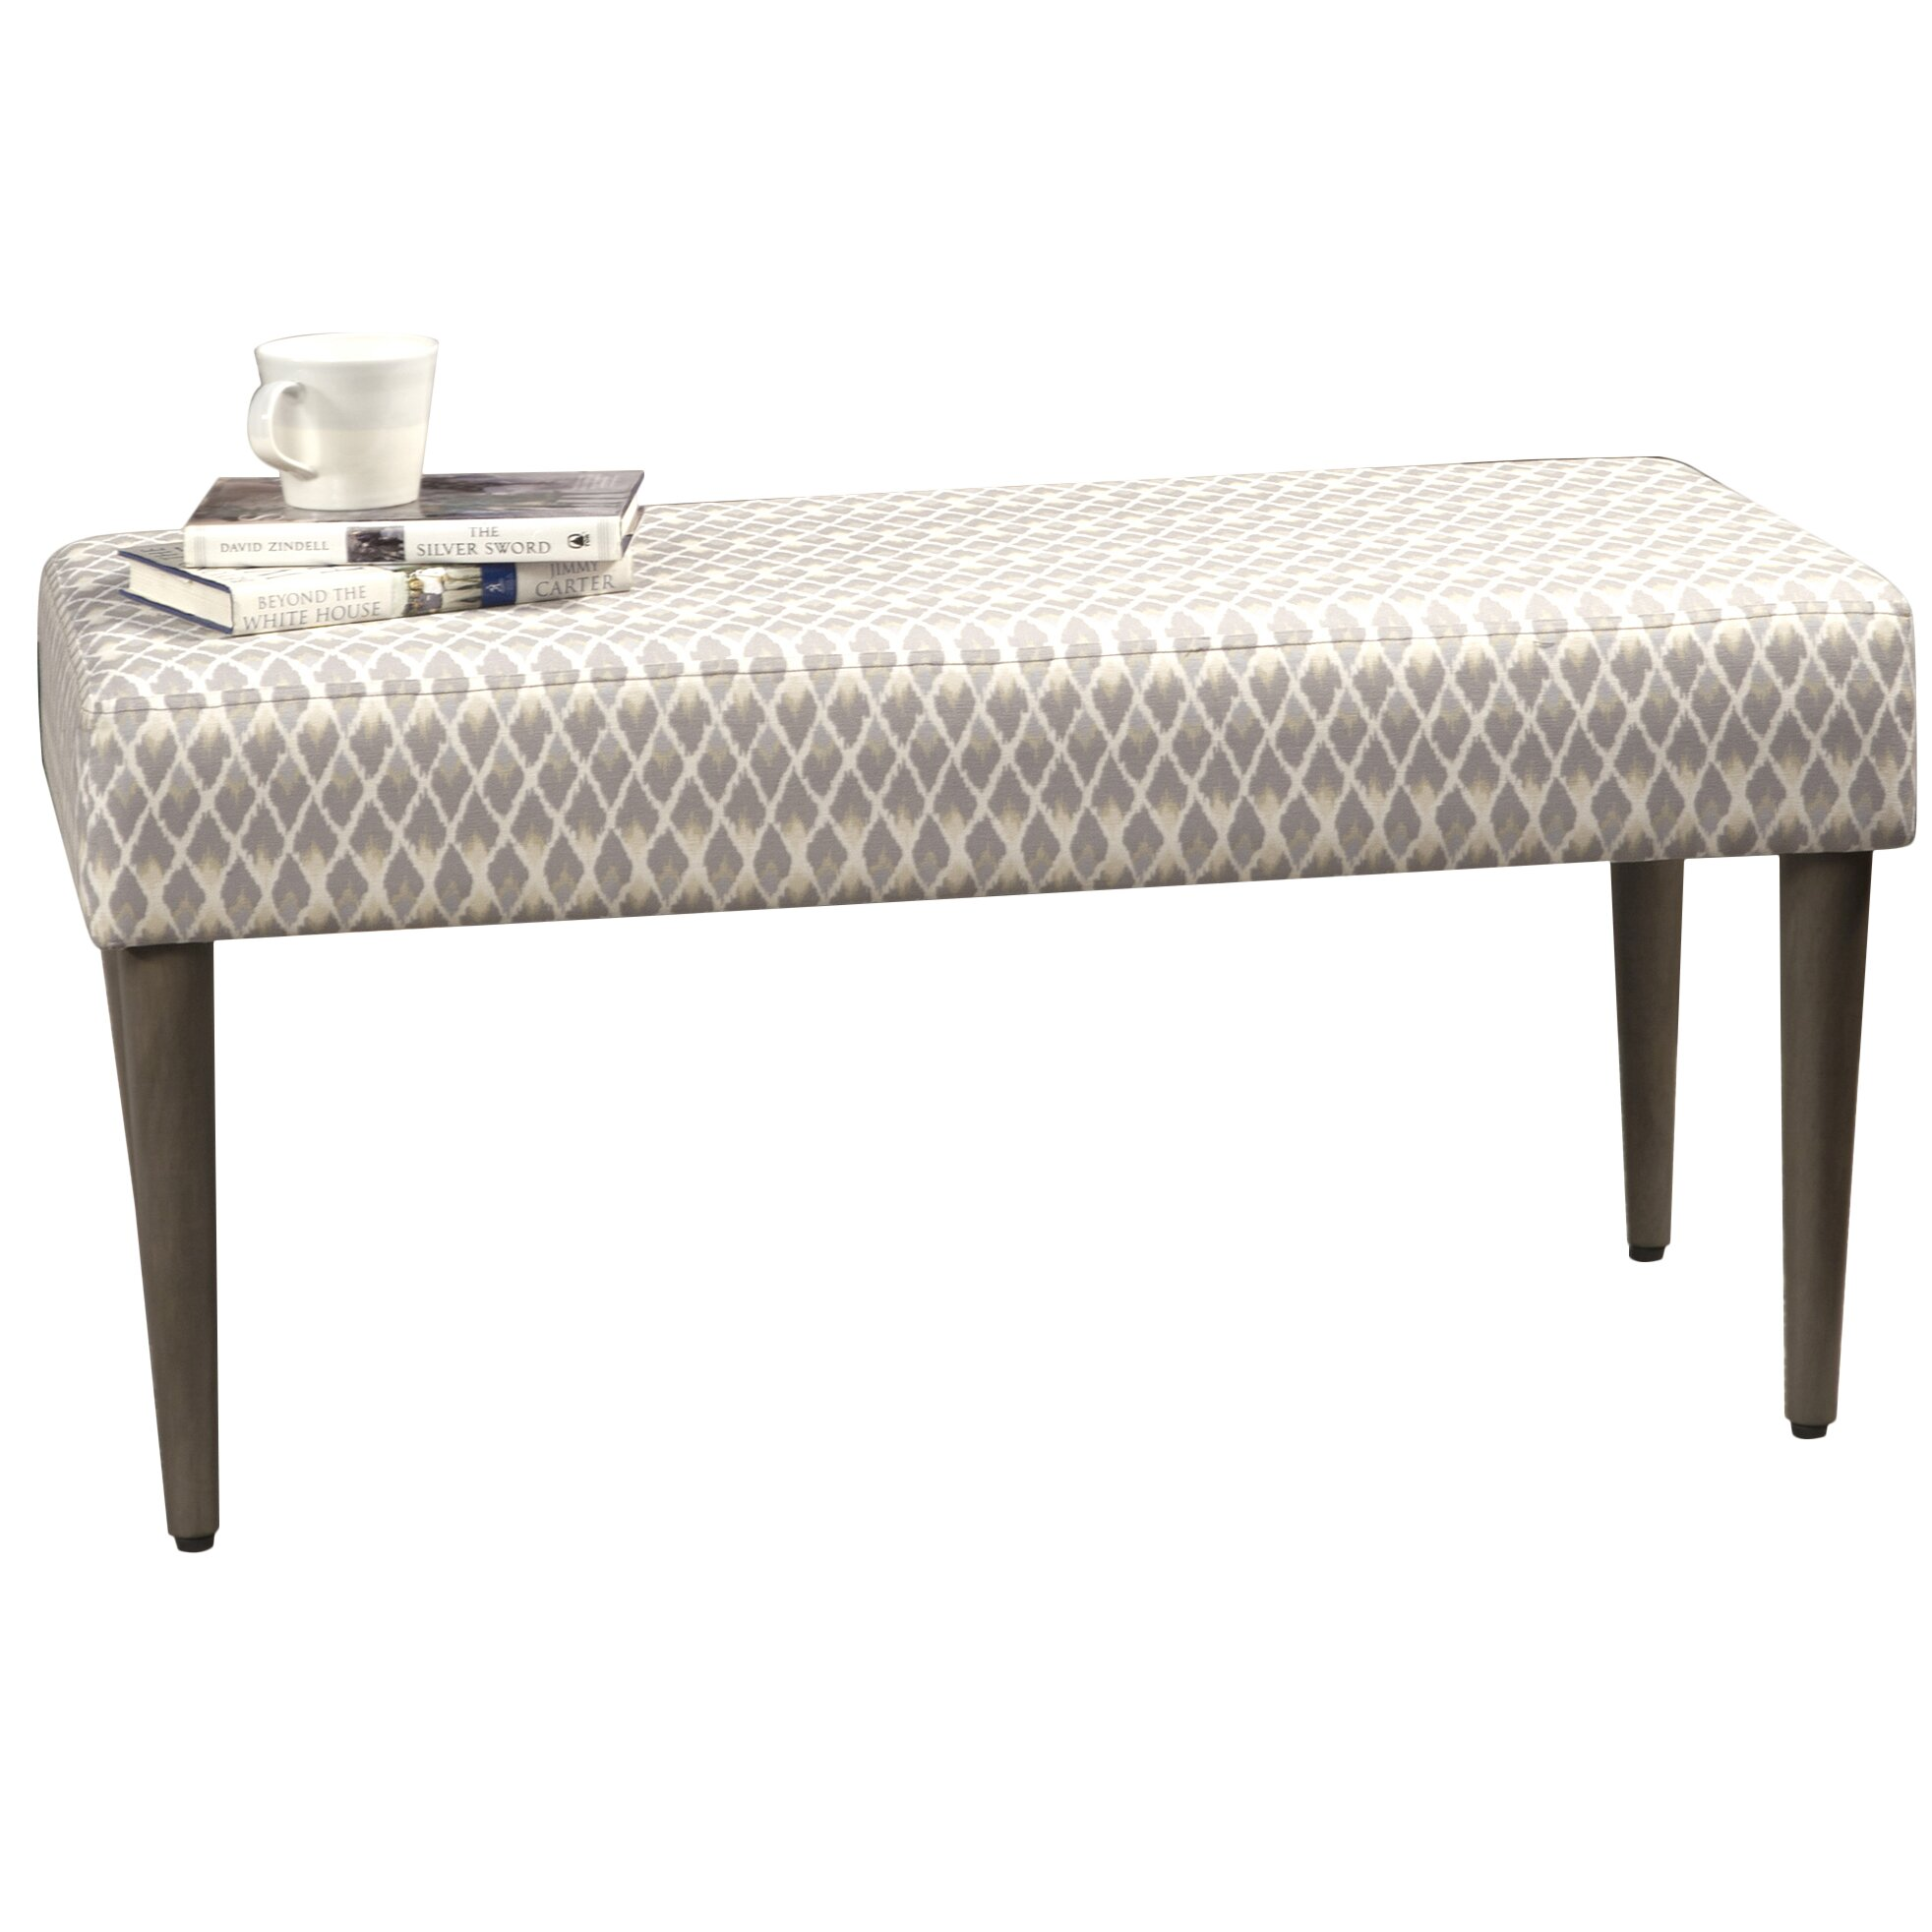 upholstered bedroom bench by homepop